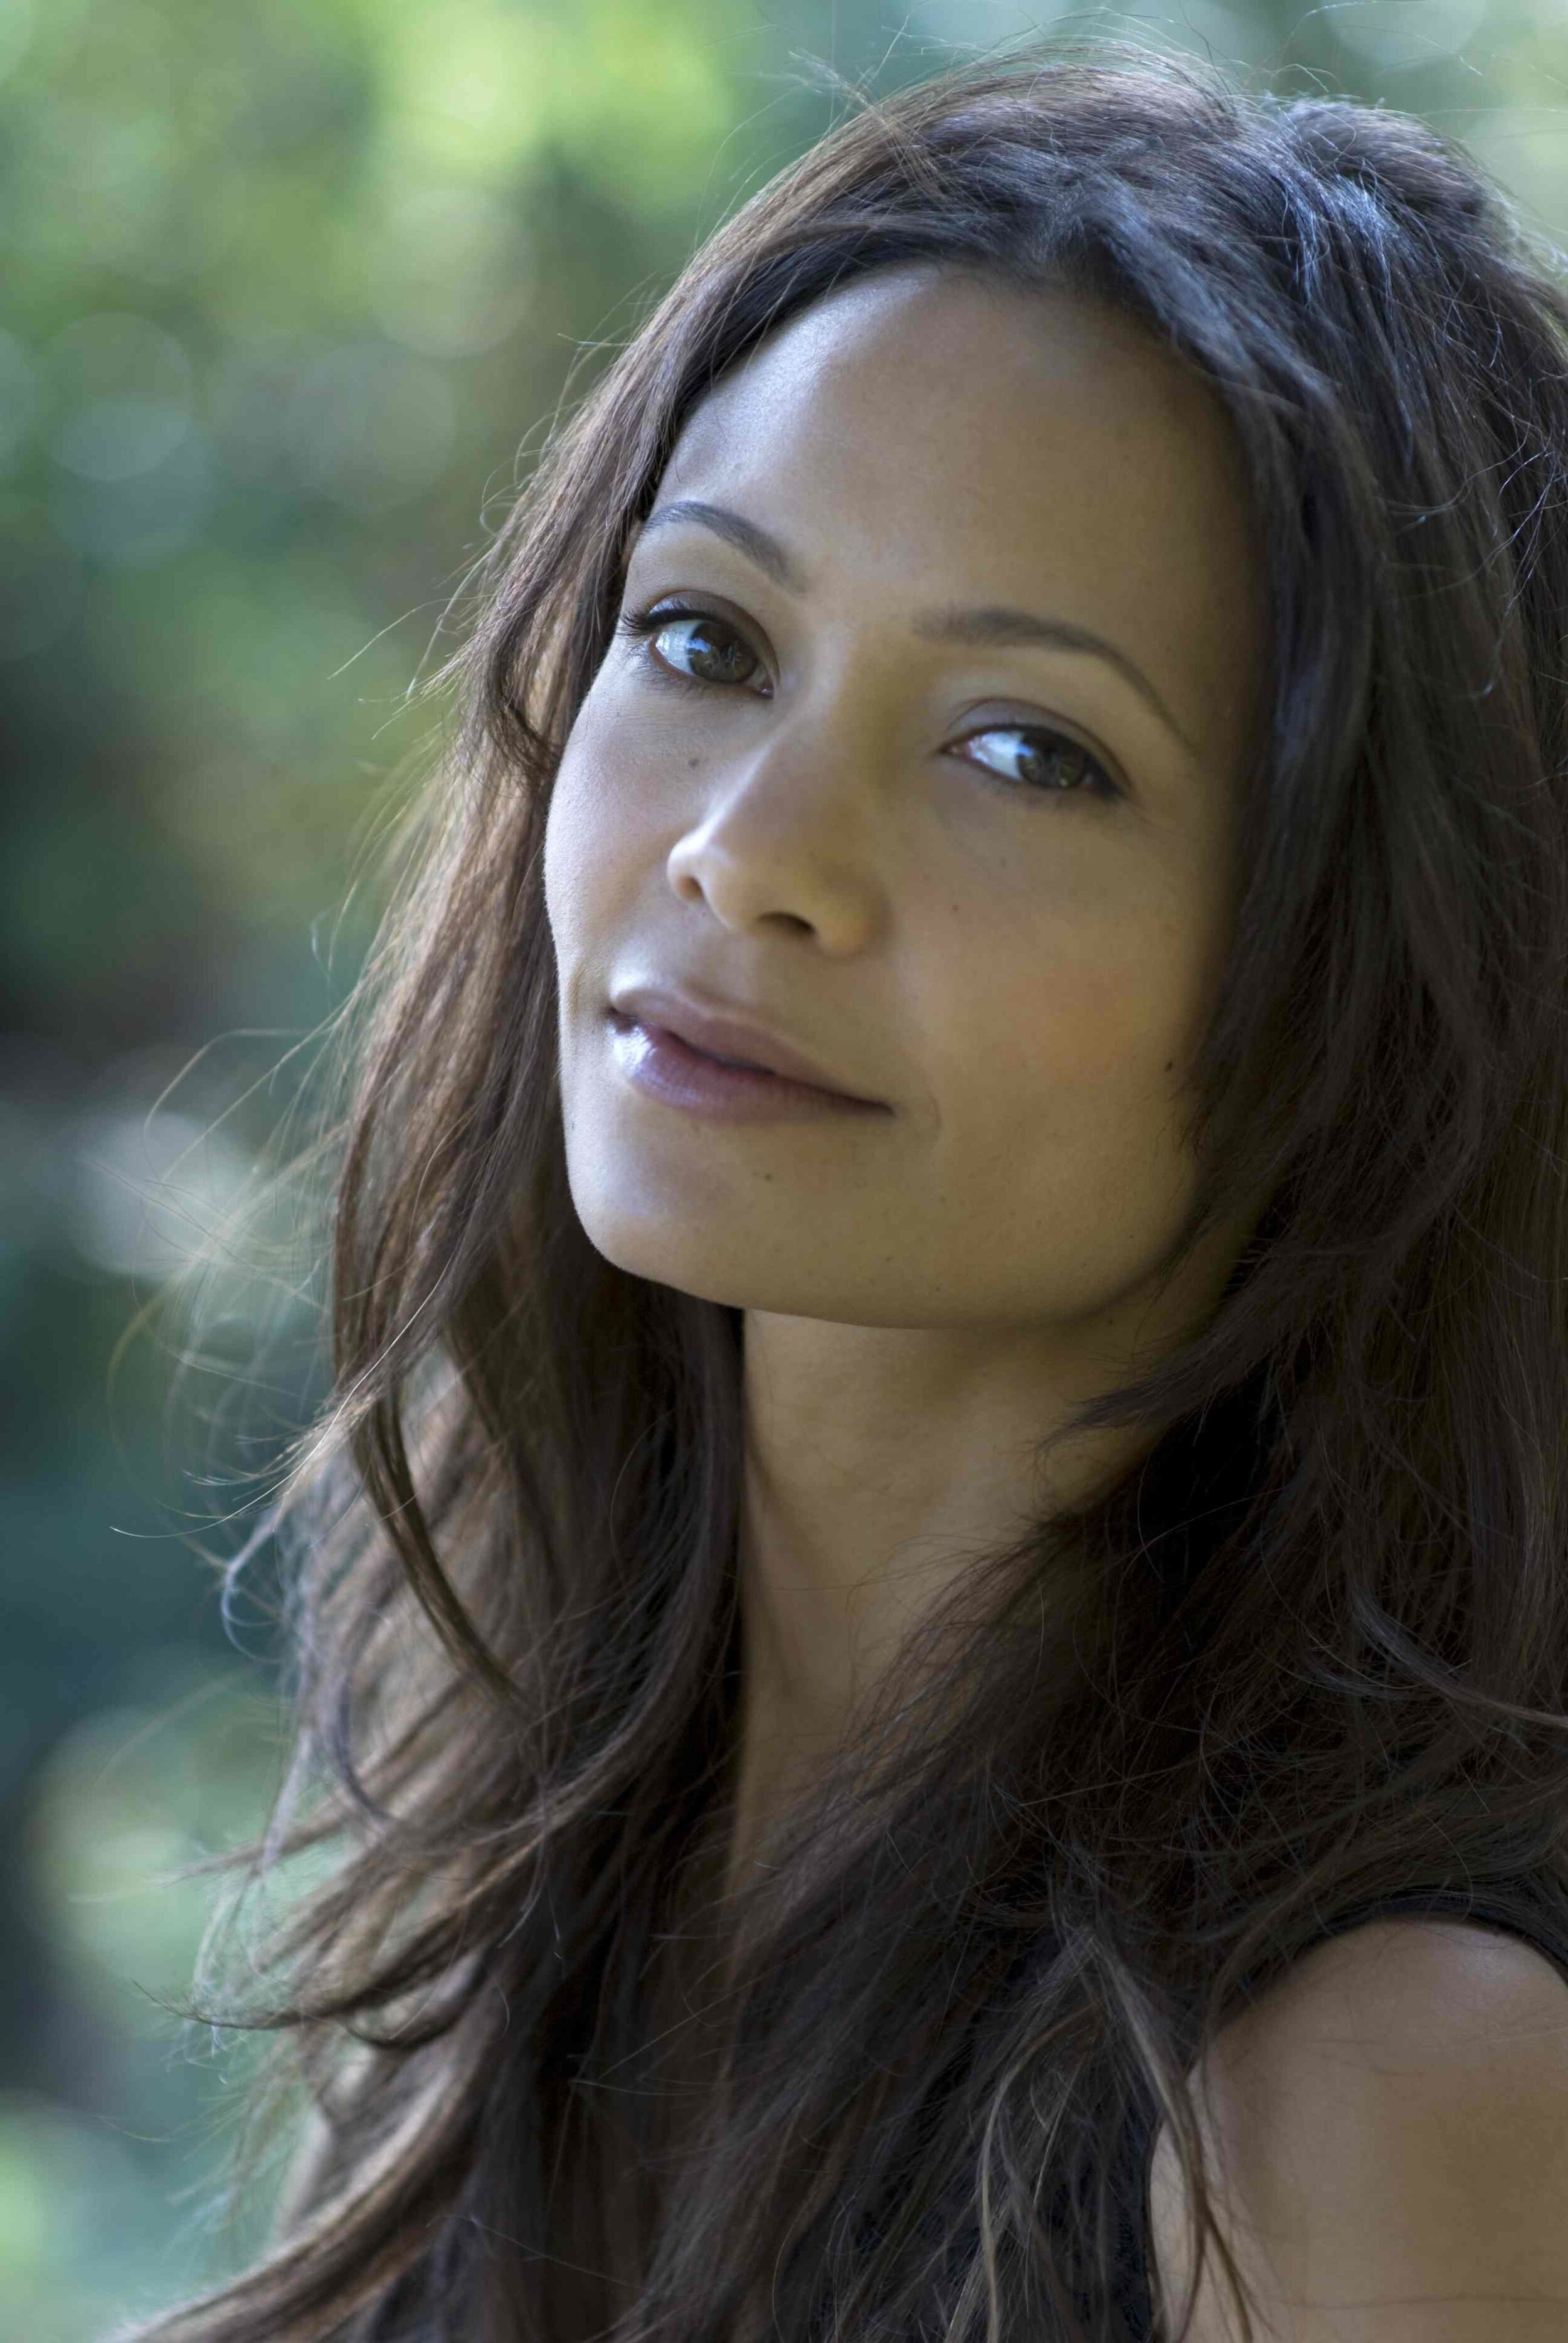 Hbo entertainment in association with kilter films, bad robot and warner bros. Thandie Newton Actress 16 Days 16 Films